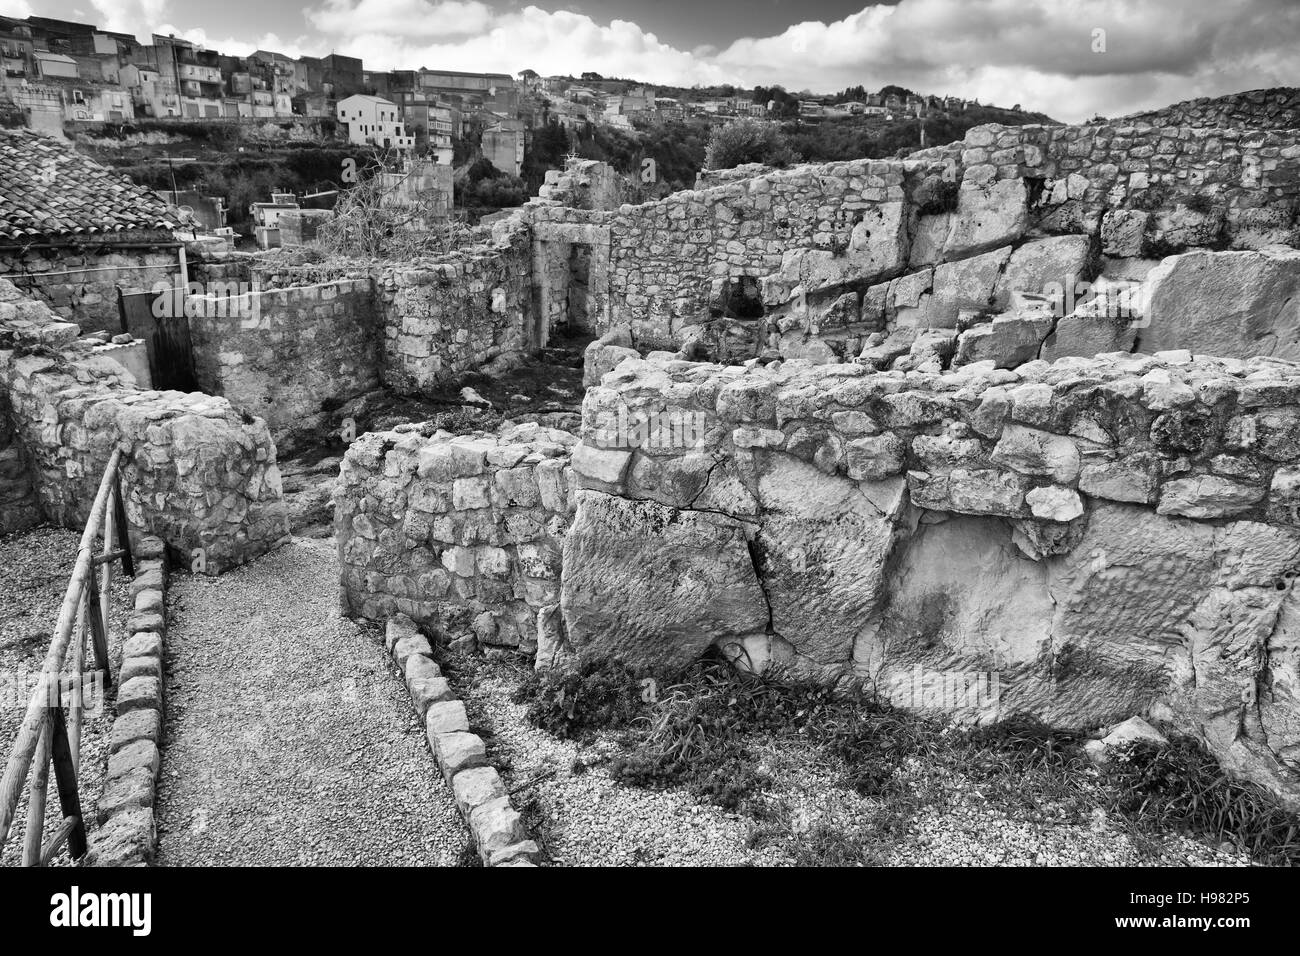 Ruins and details of medieval castle of Palazzolo Acreide. Sicily - Stock Image